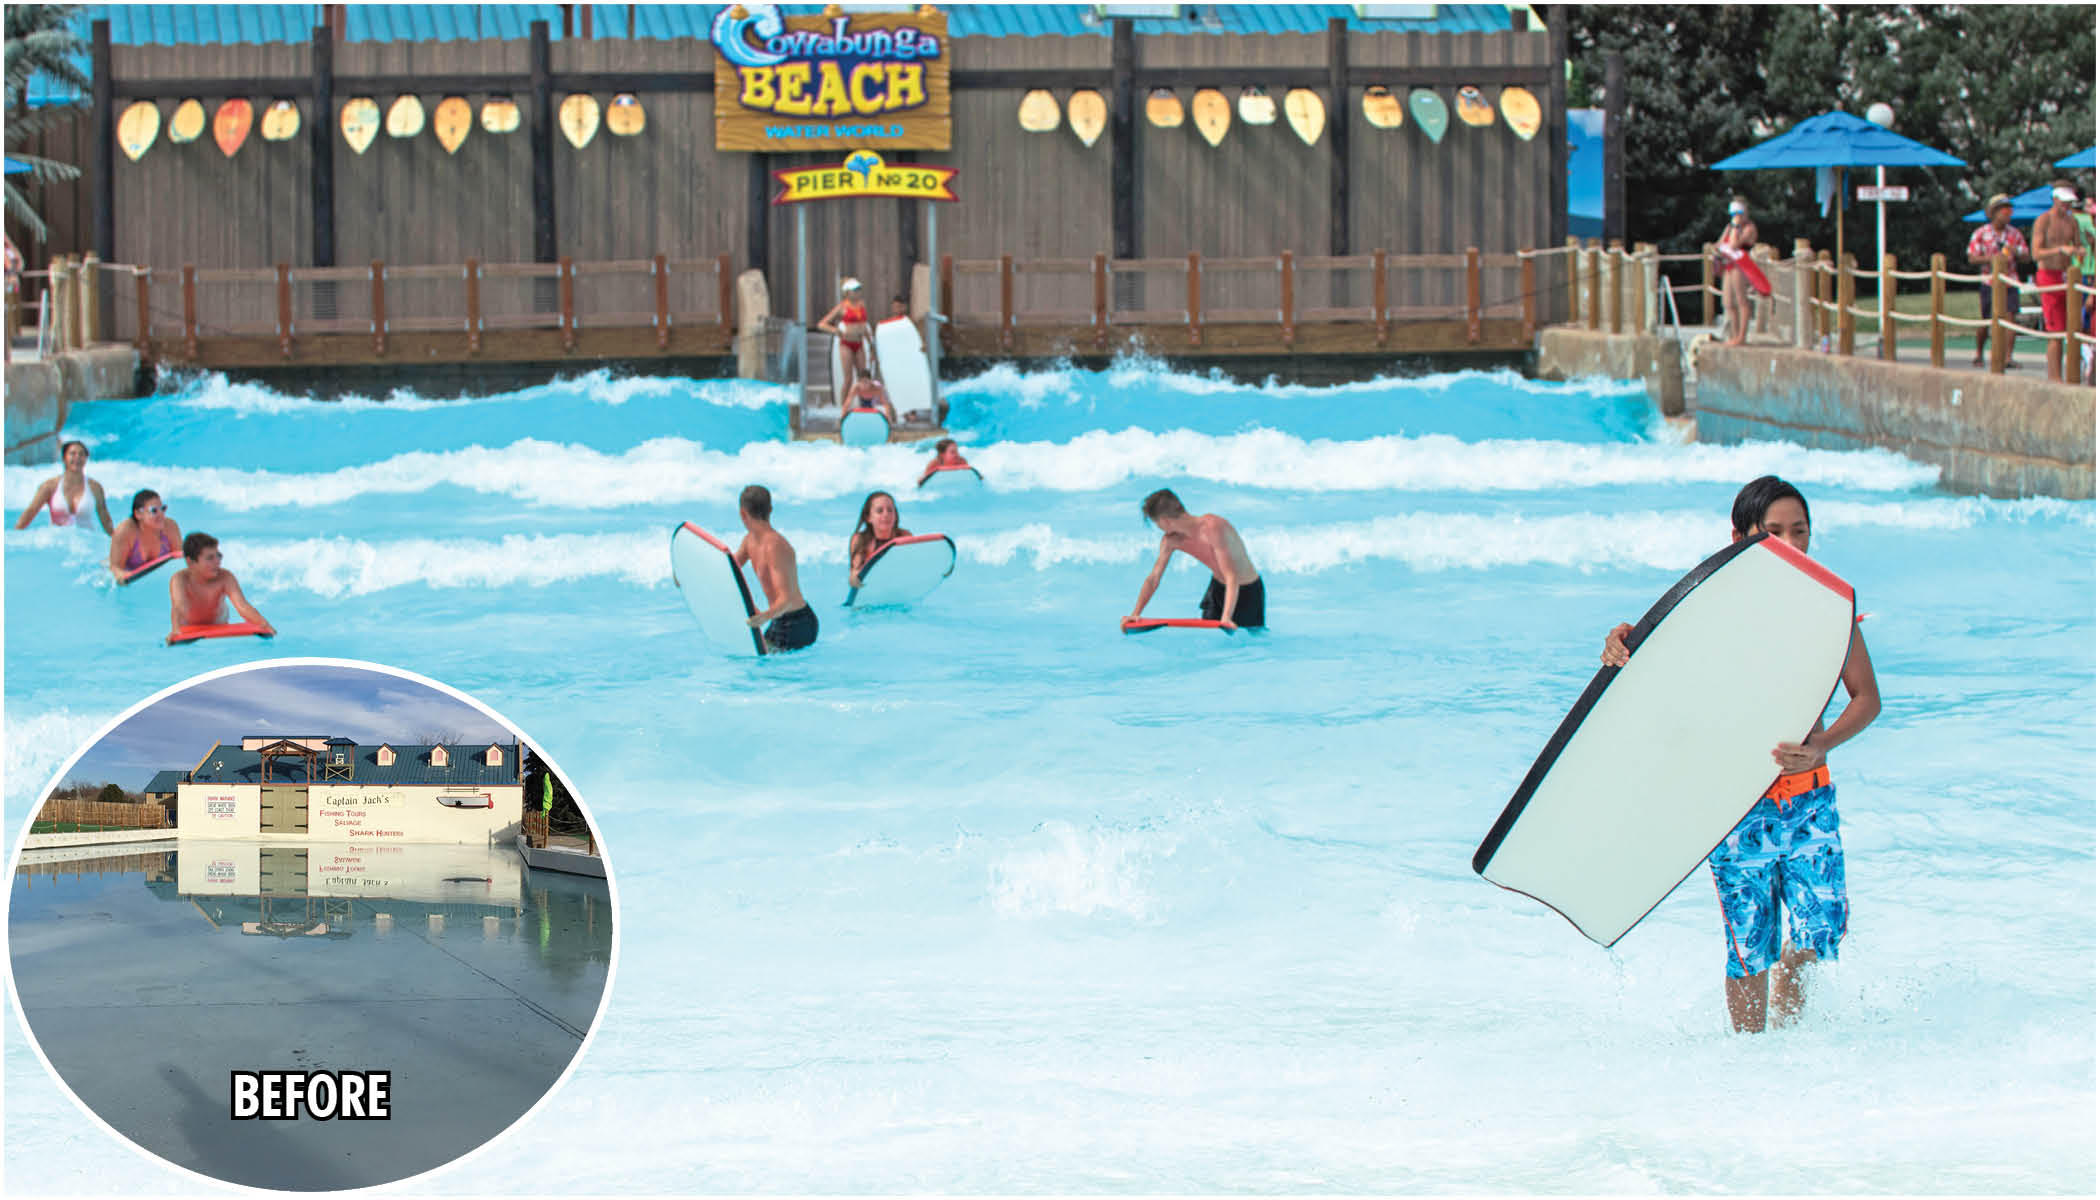 before after photo of wave pool transformed into boogie boarding pool